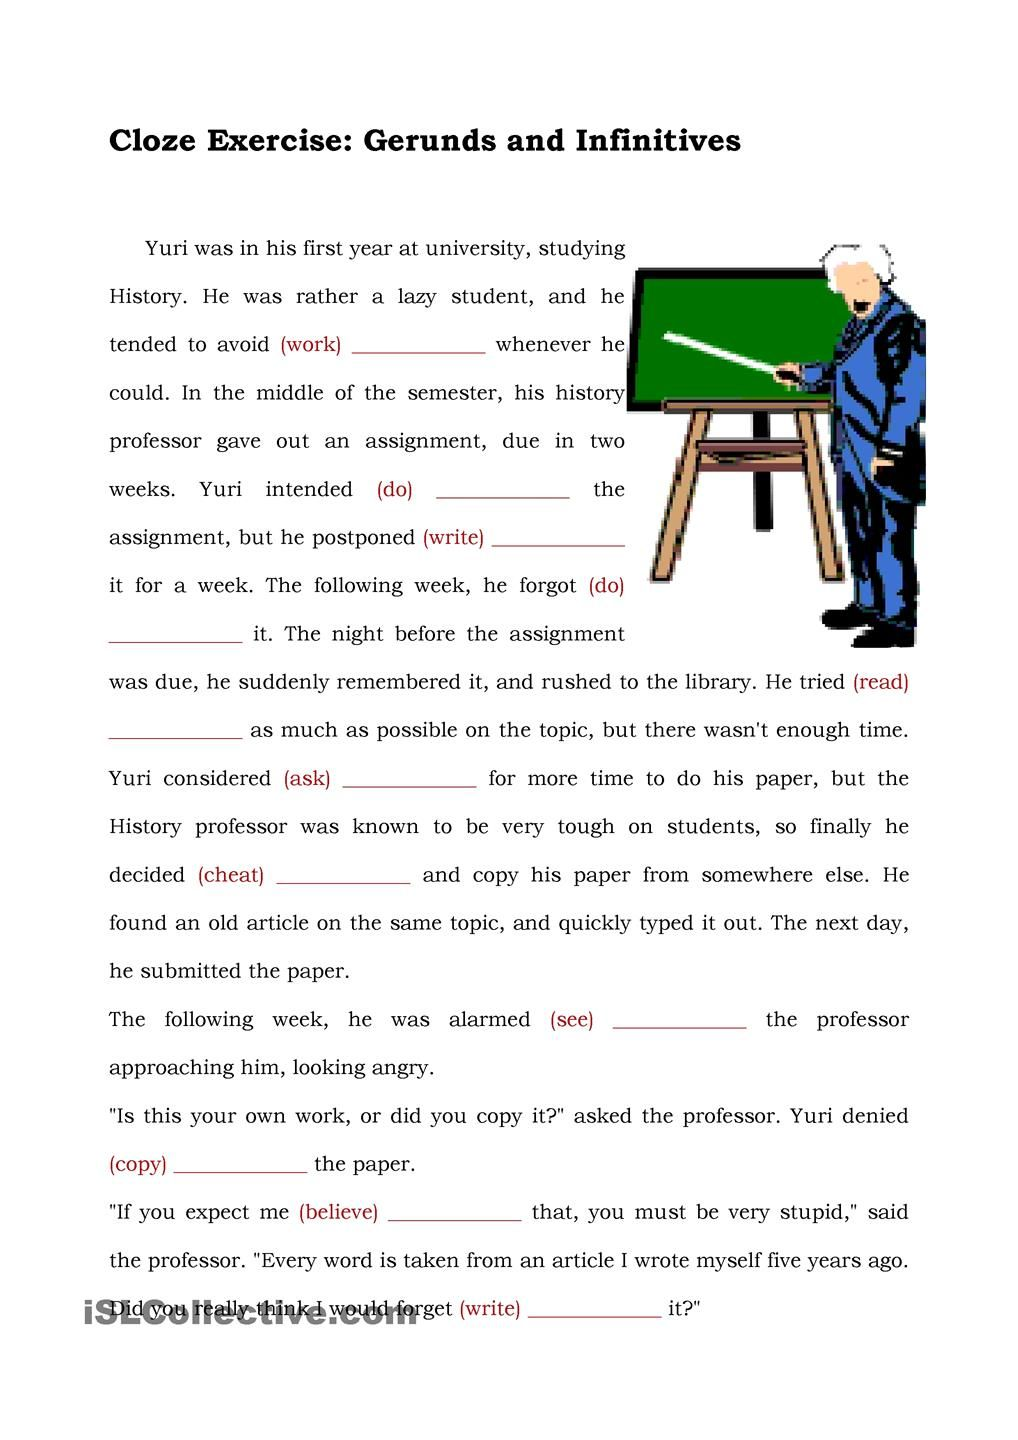 hight resolution of GERUND AND INFINITIVE   Cloze activity